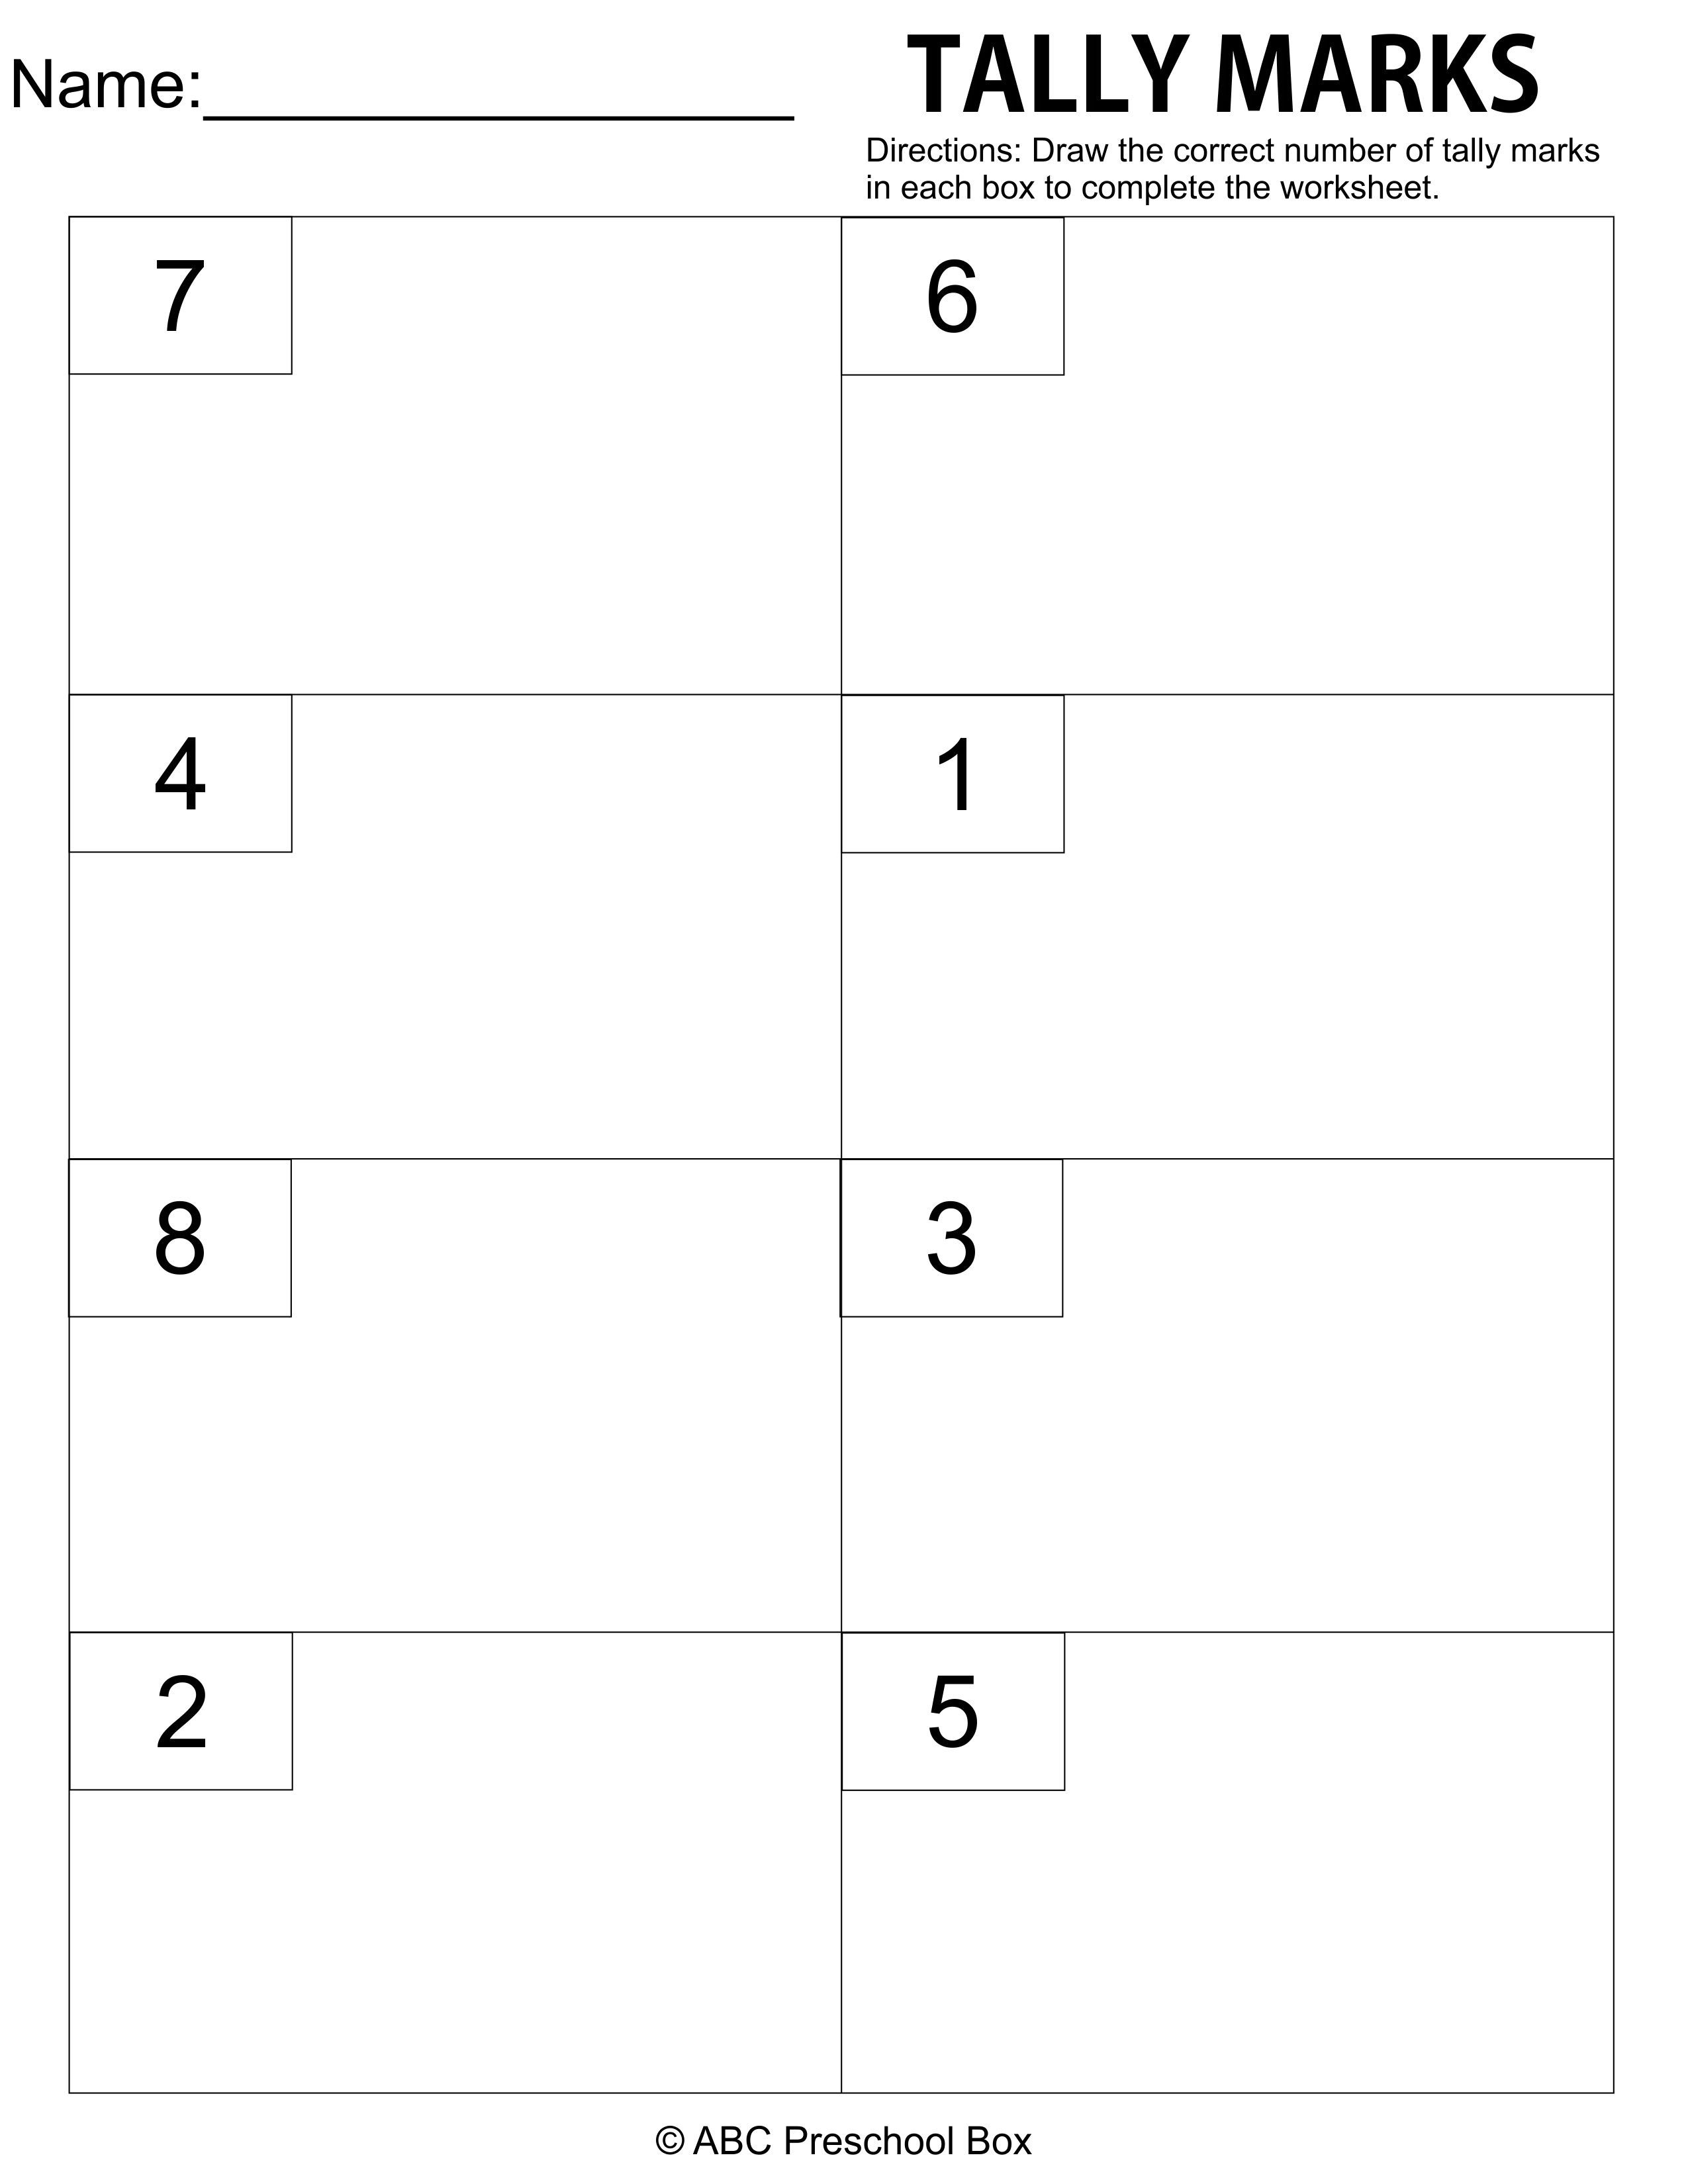 medium resolution of Tally marks preschool worksheet from abcpreschoolbox.com   Letter  recognition worksheets